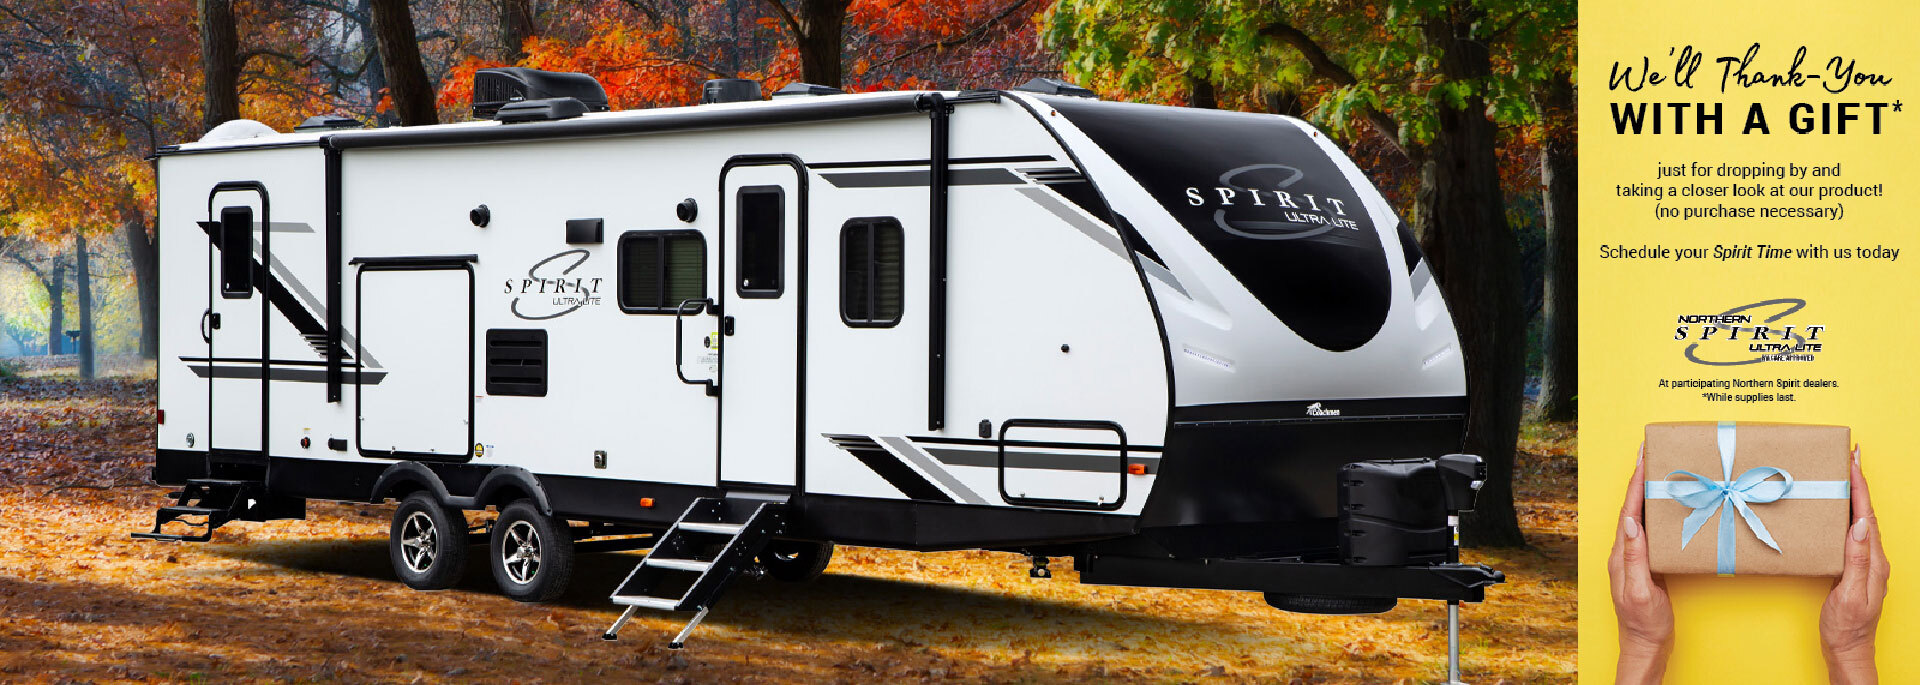 Northern Spirit Travel Trailer